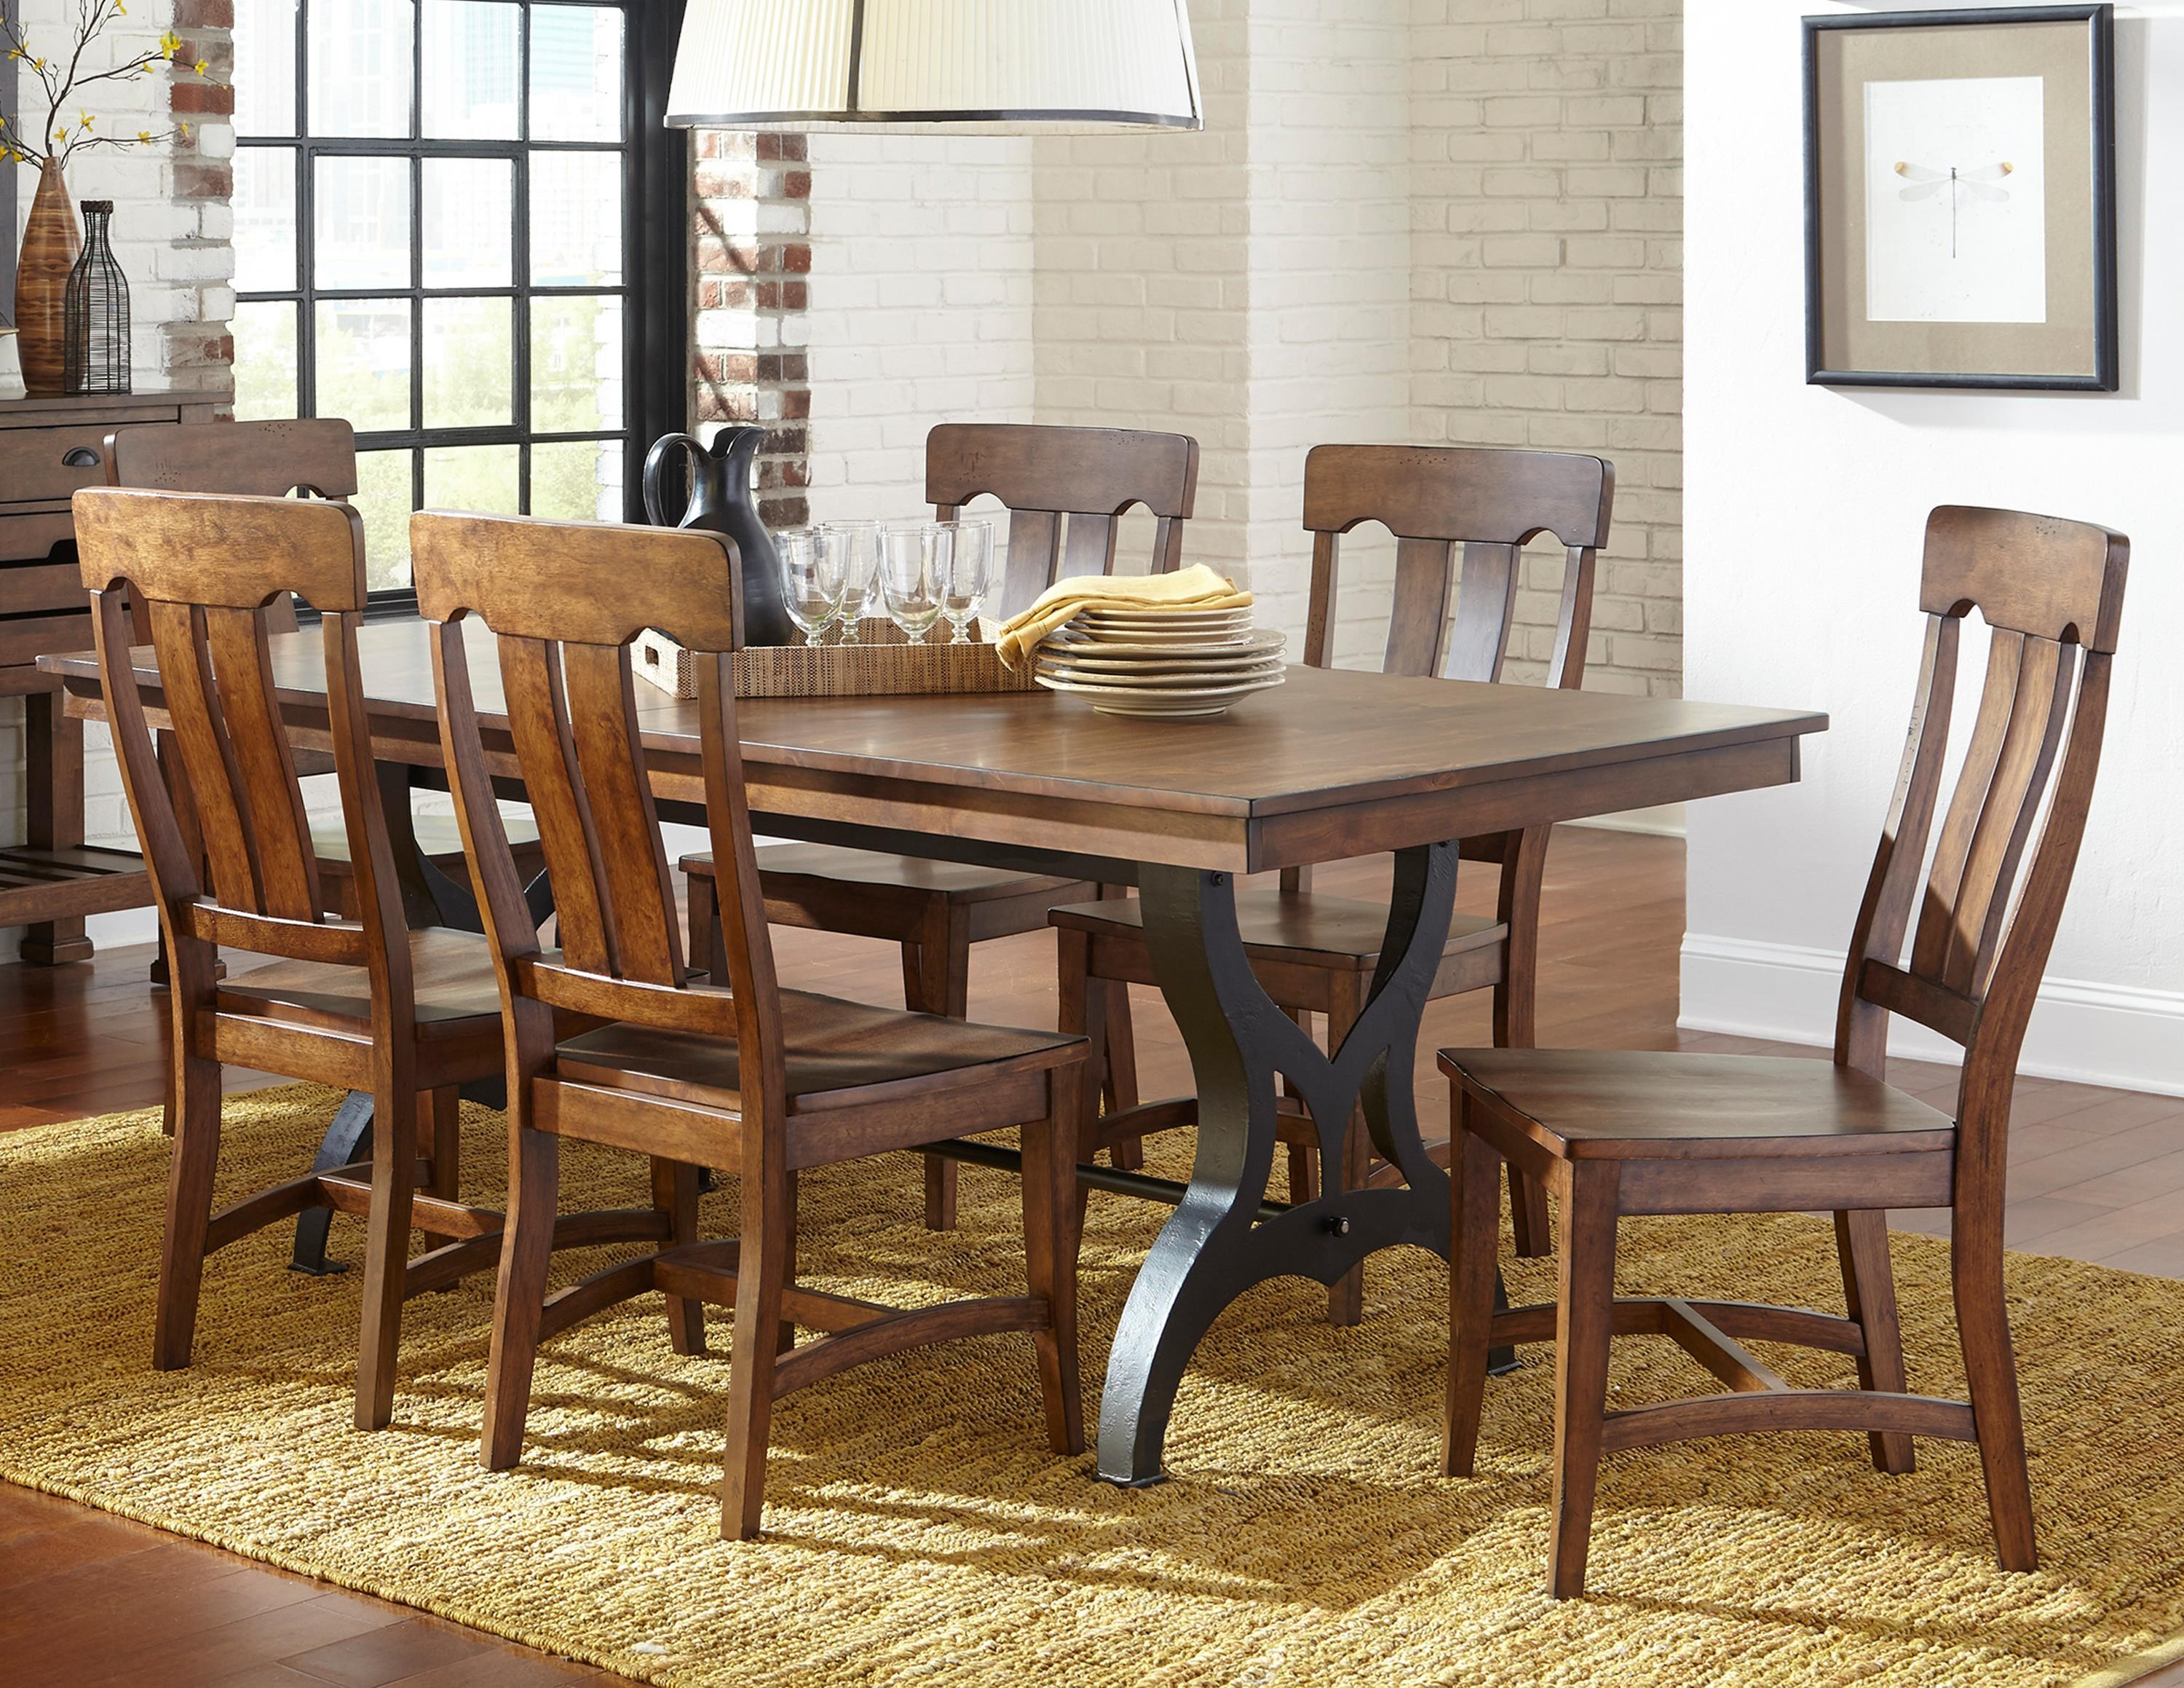 Intercon The District 5 Piece Table u0026 Chair Set with Leaf - Item Number DT & Intercon The District 5 Piece Table u0026 Chair Set with Leaf | Wayside ...